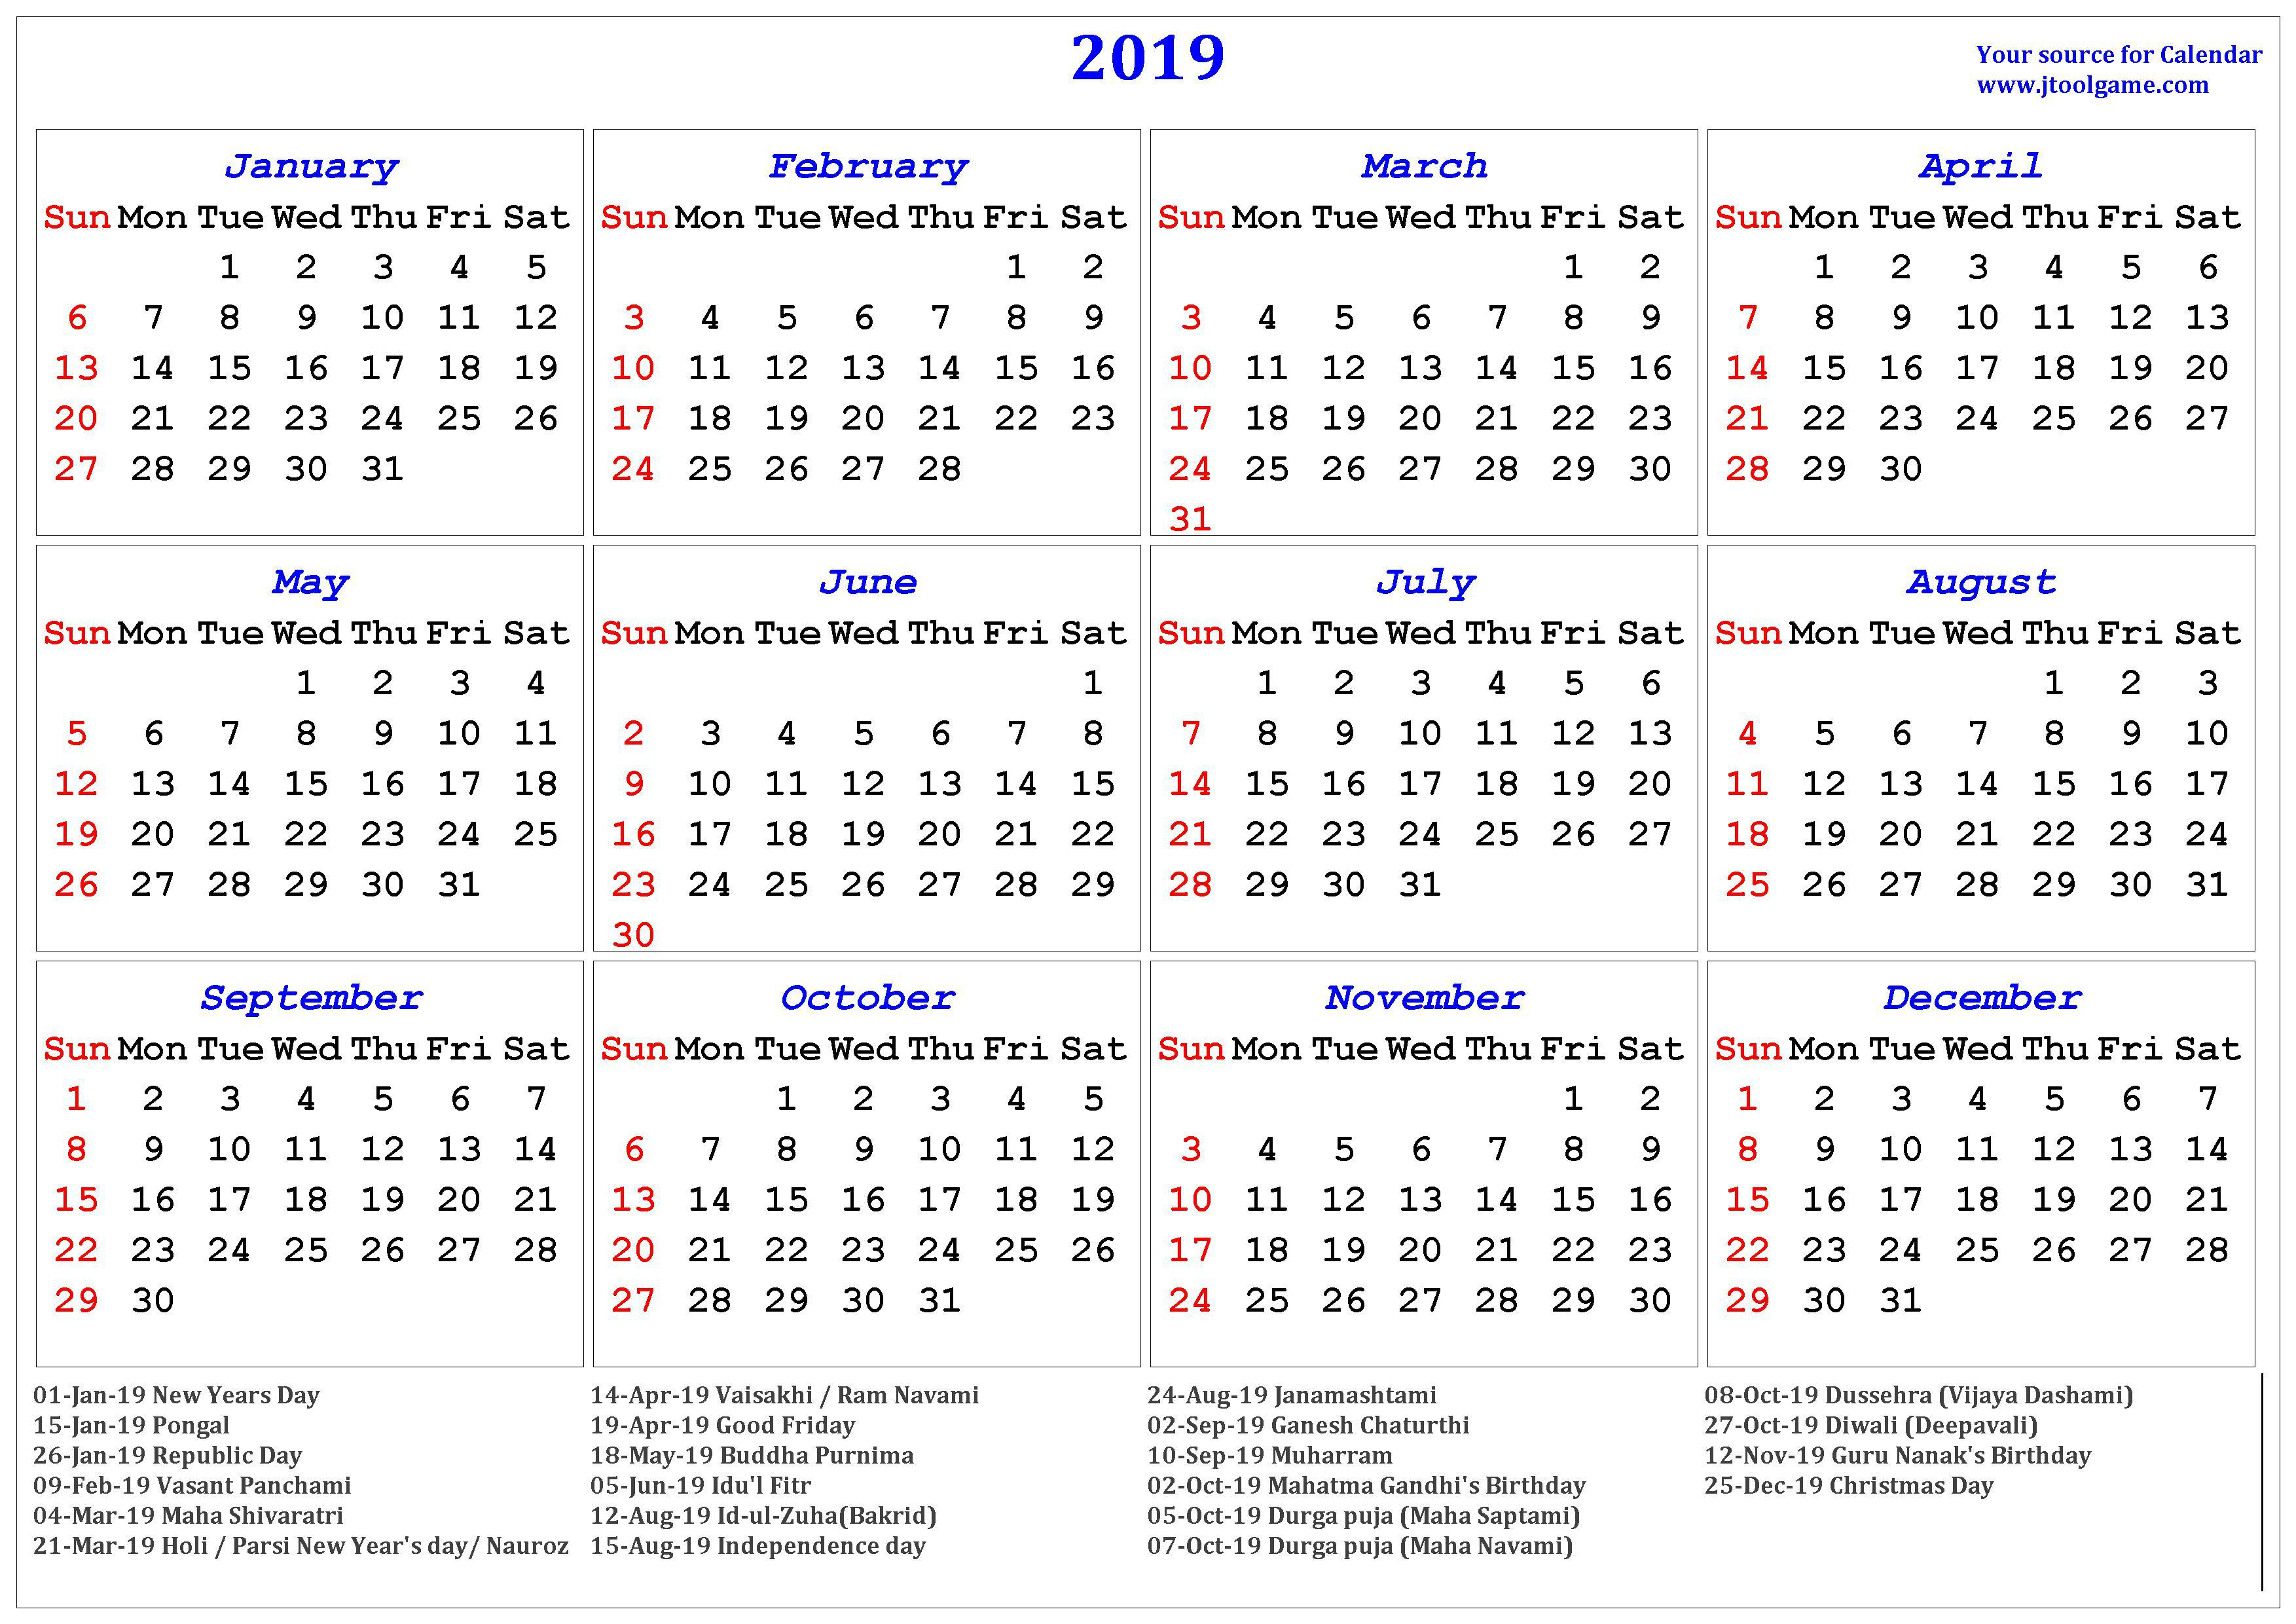 Indian Calendar 2020 With Holidays And Festival 2019 Hindu Calendar with Tithi | Tyohar, Holidays, Festivals